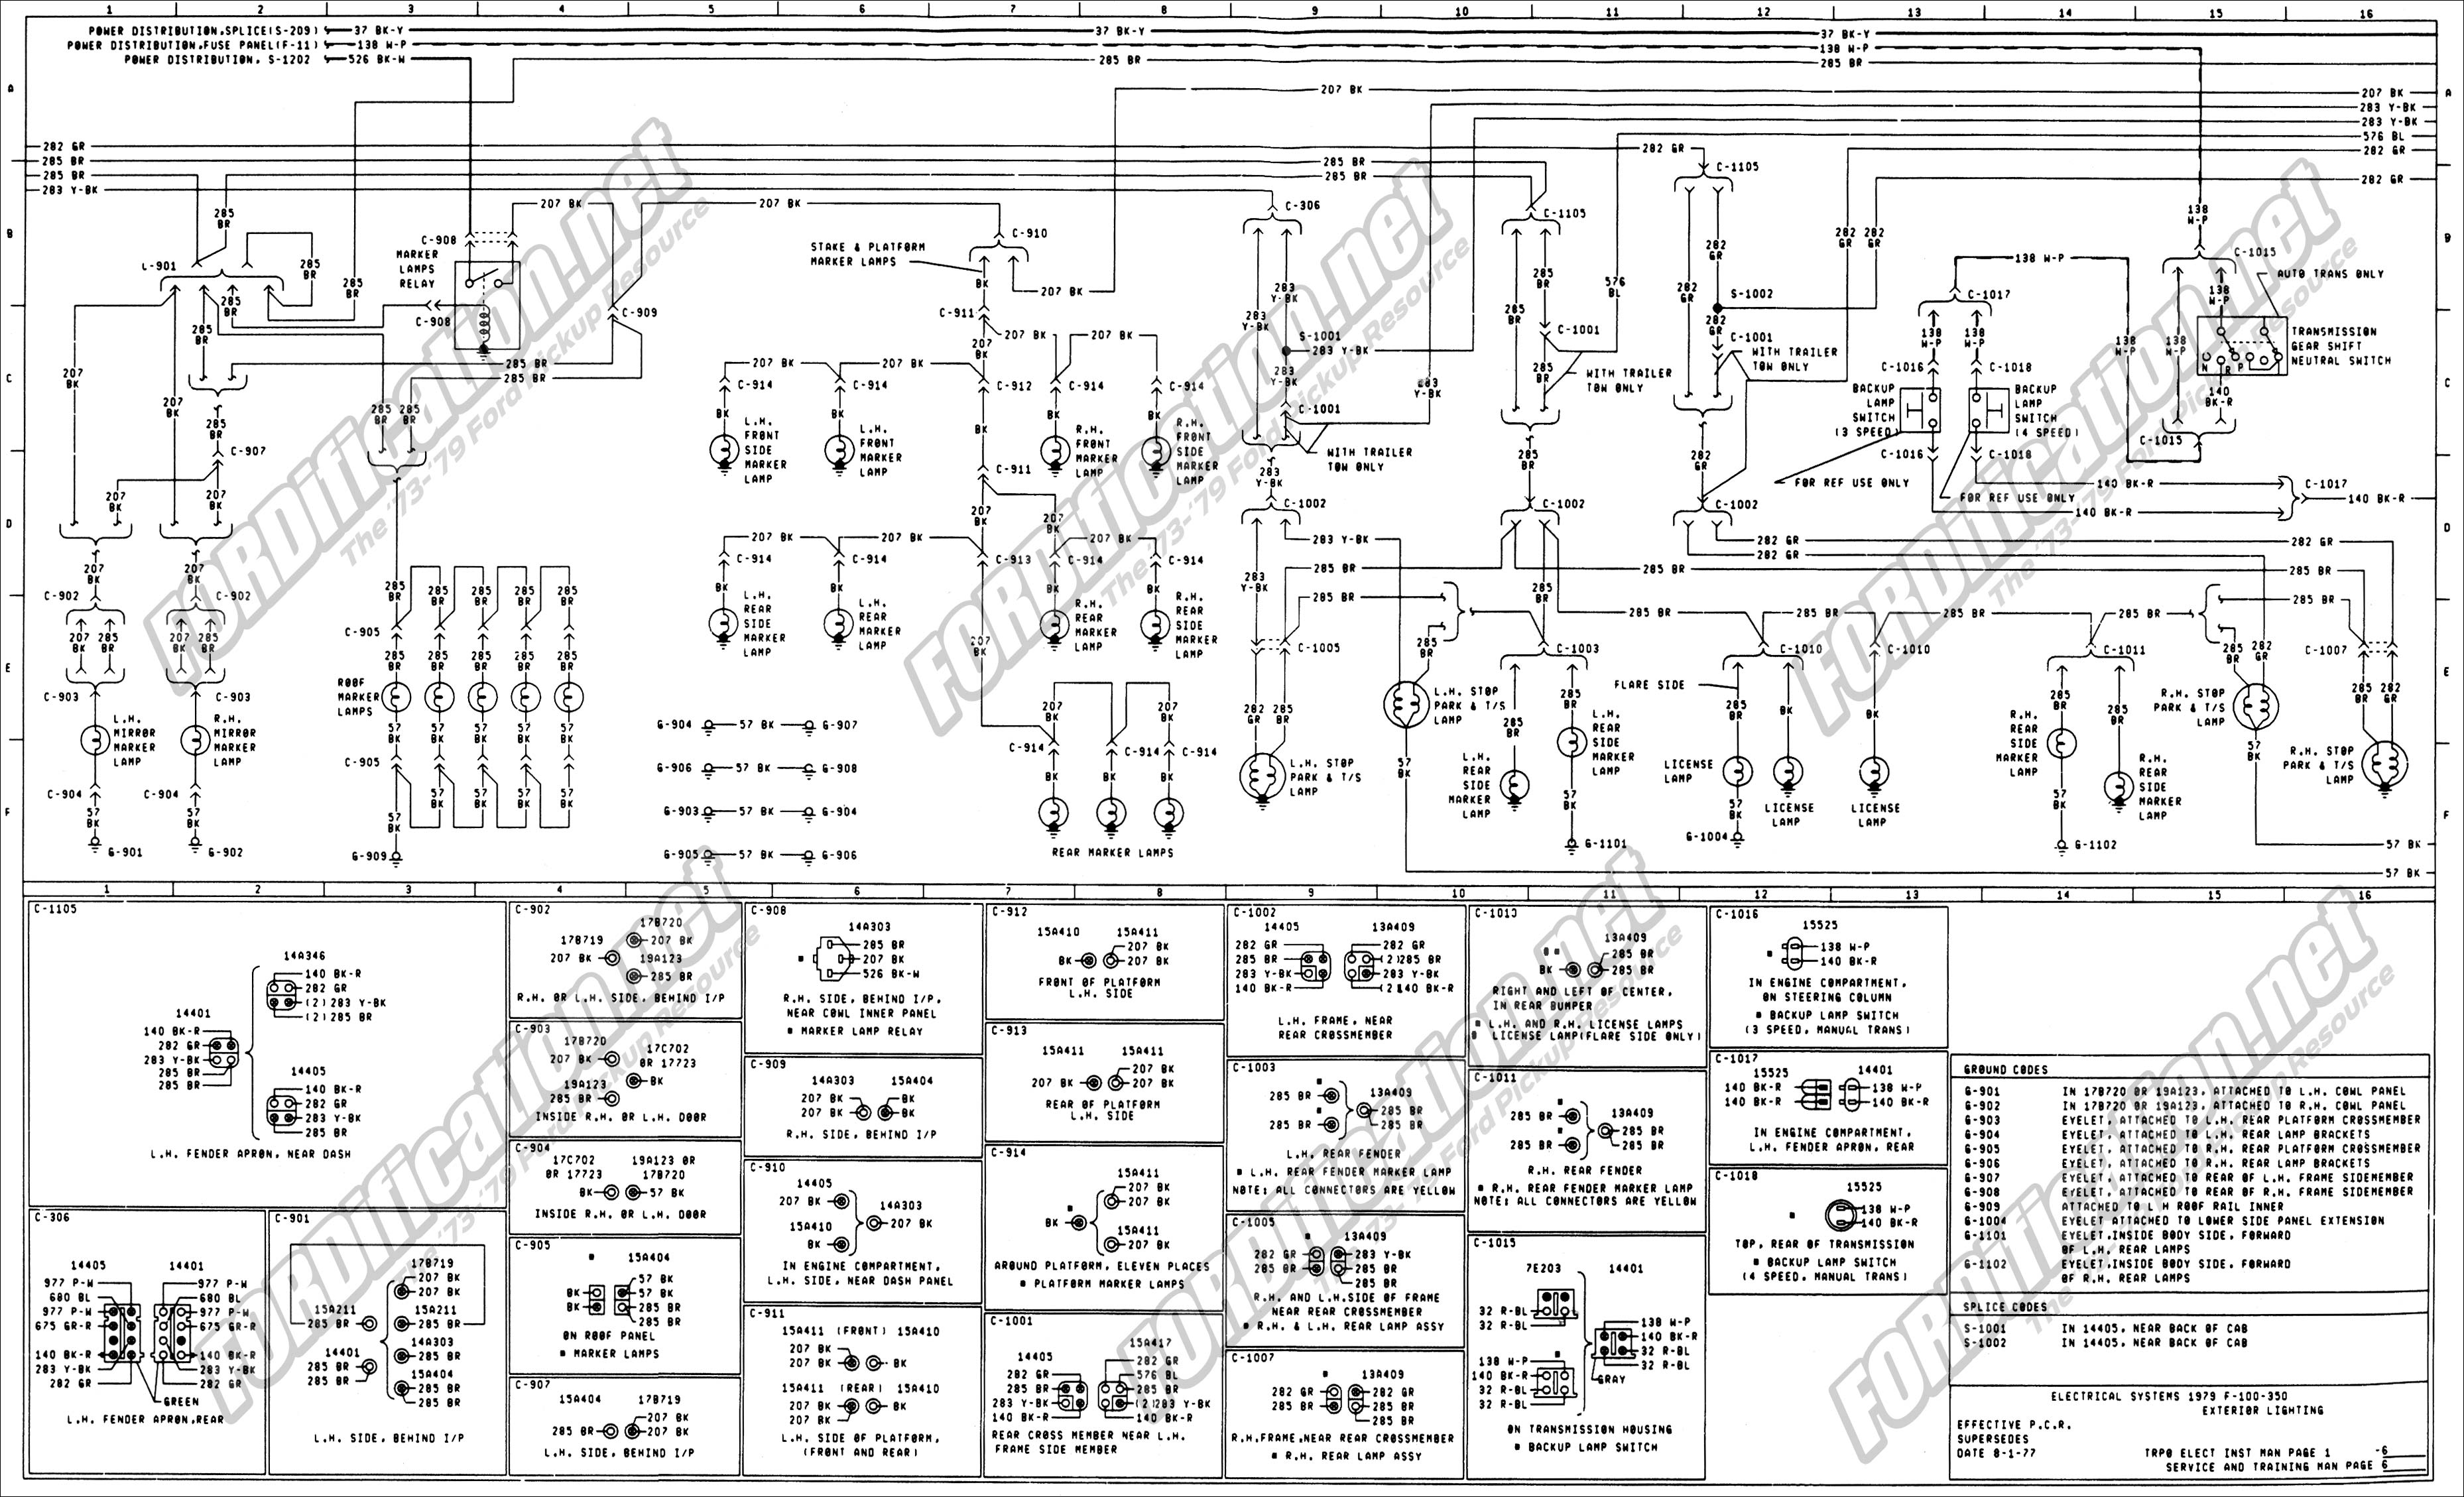 1989 ford thunderbird wiring diagram 1989 ford thunderbird